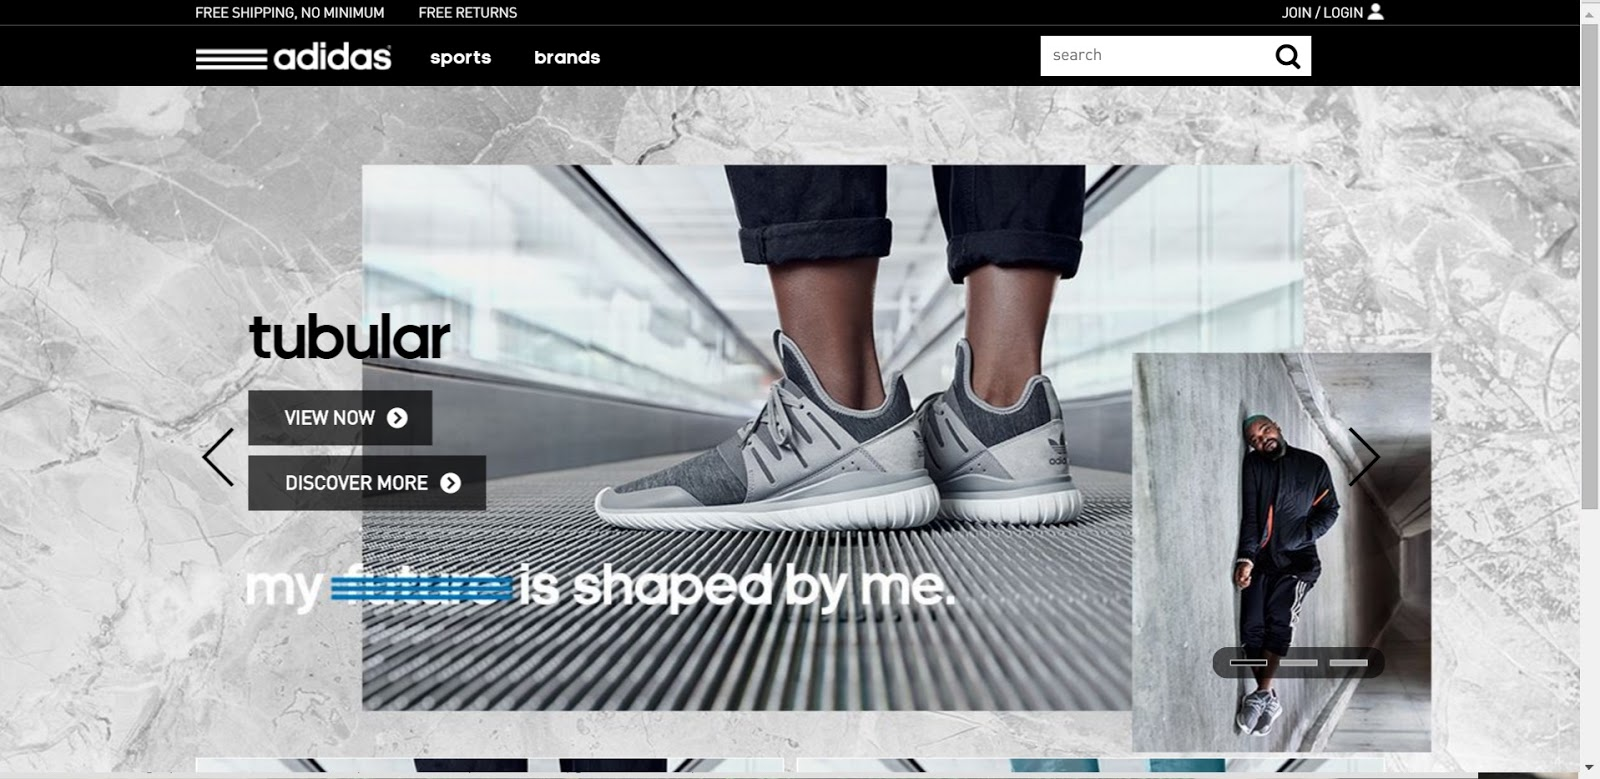 website adidas, adidas Store - Shop adidas For The Latest Styles 01a2f030e40c